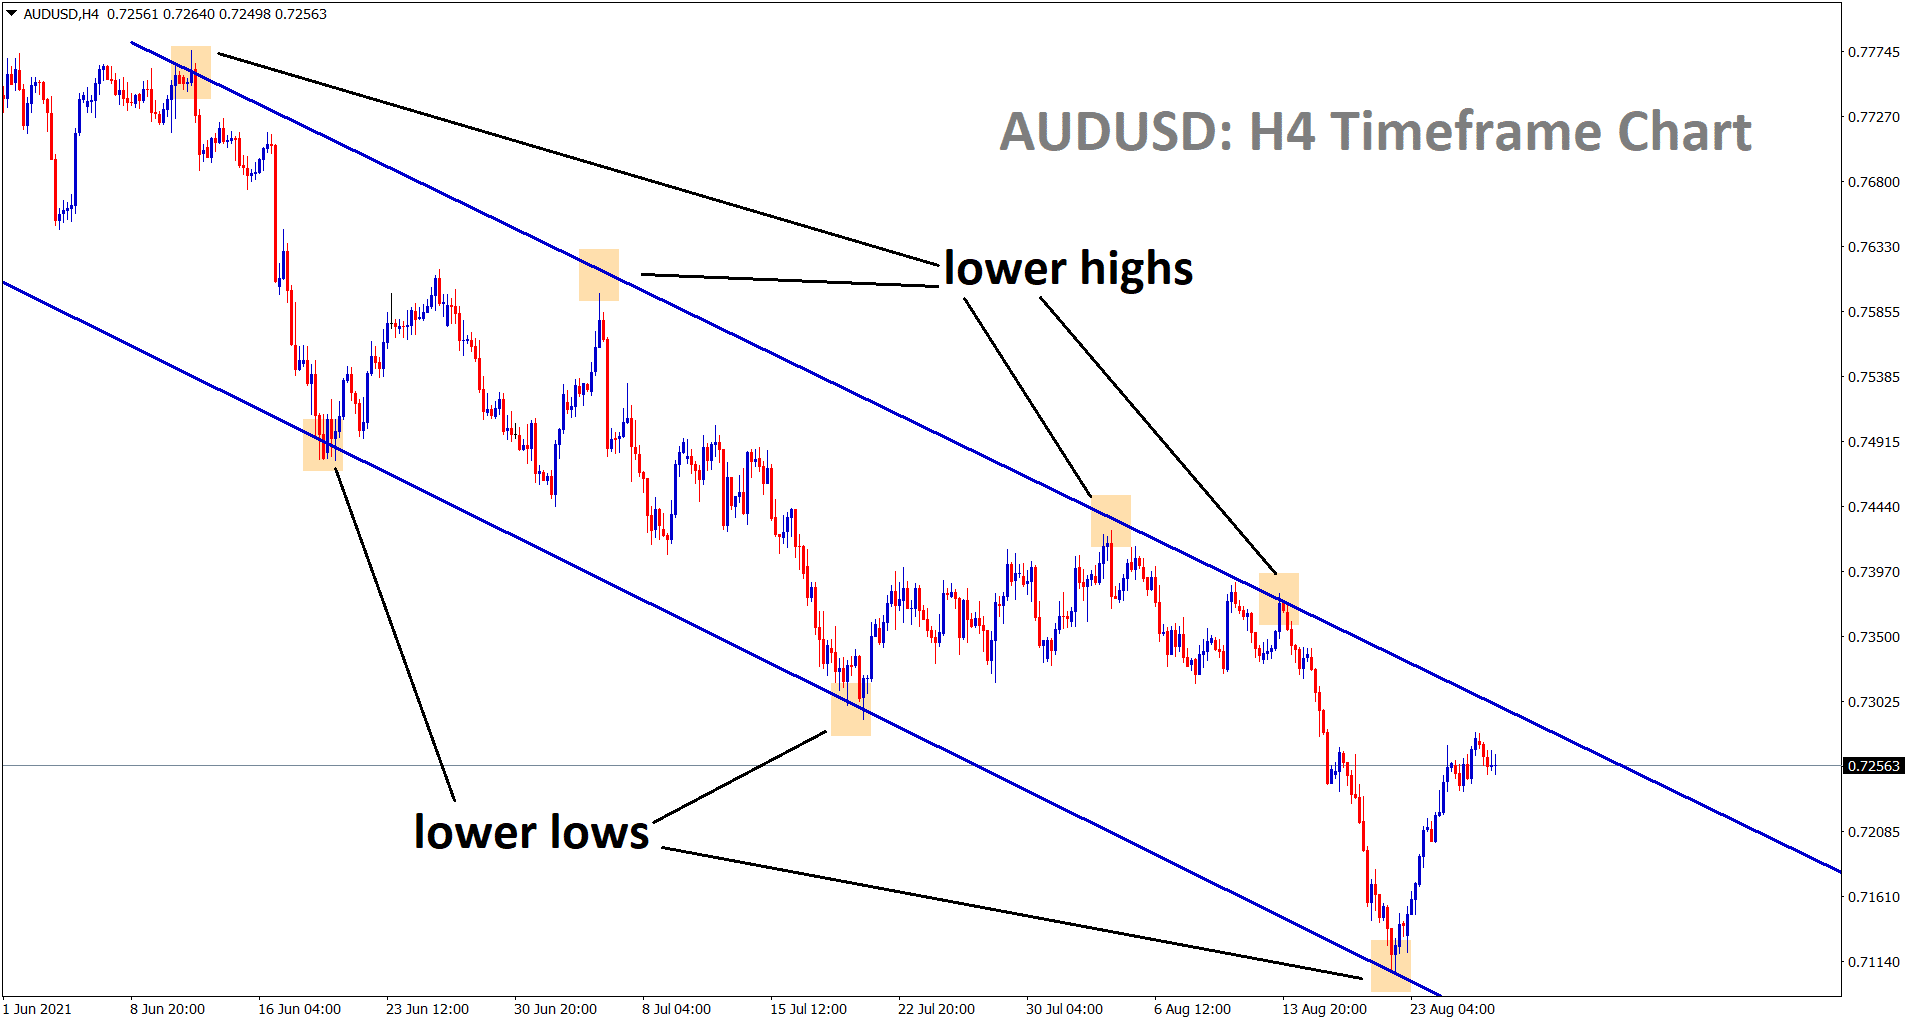 AUDUSD is going to reach the lower high area of the descending channel